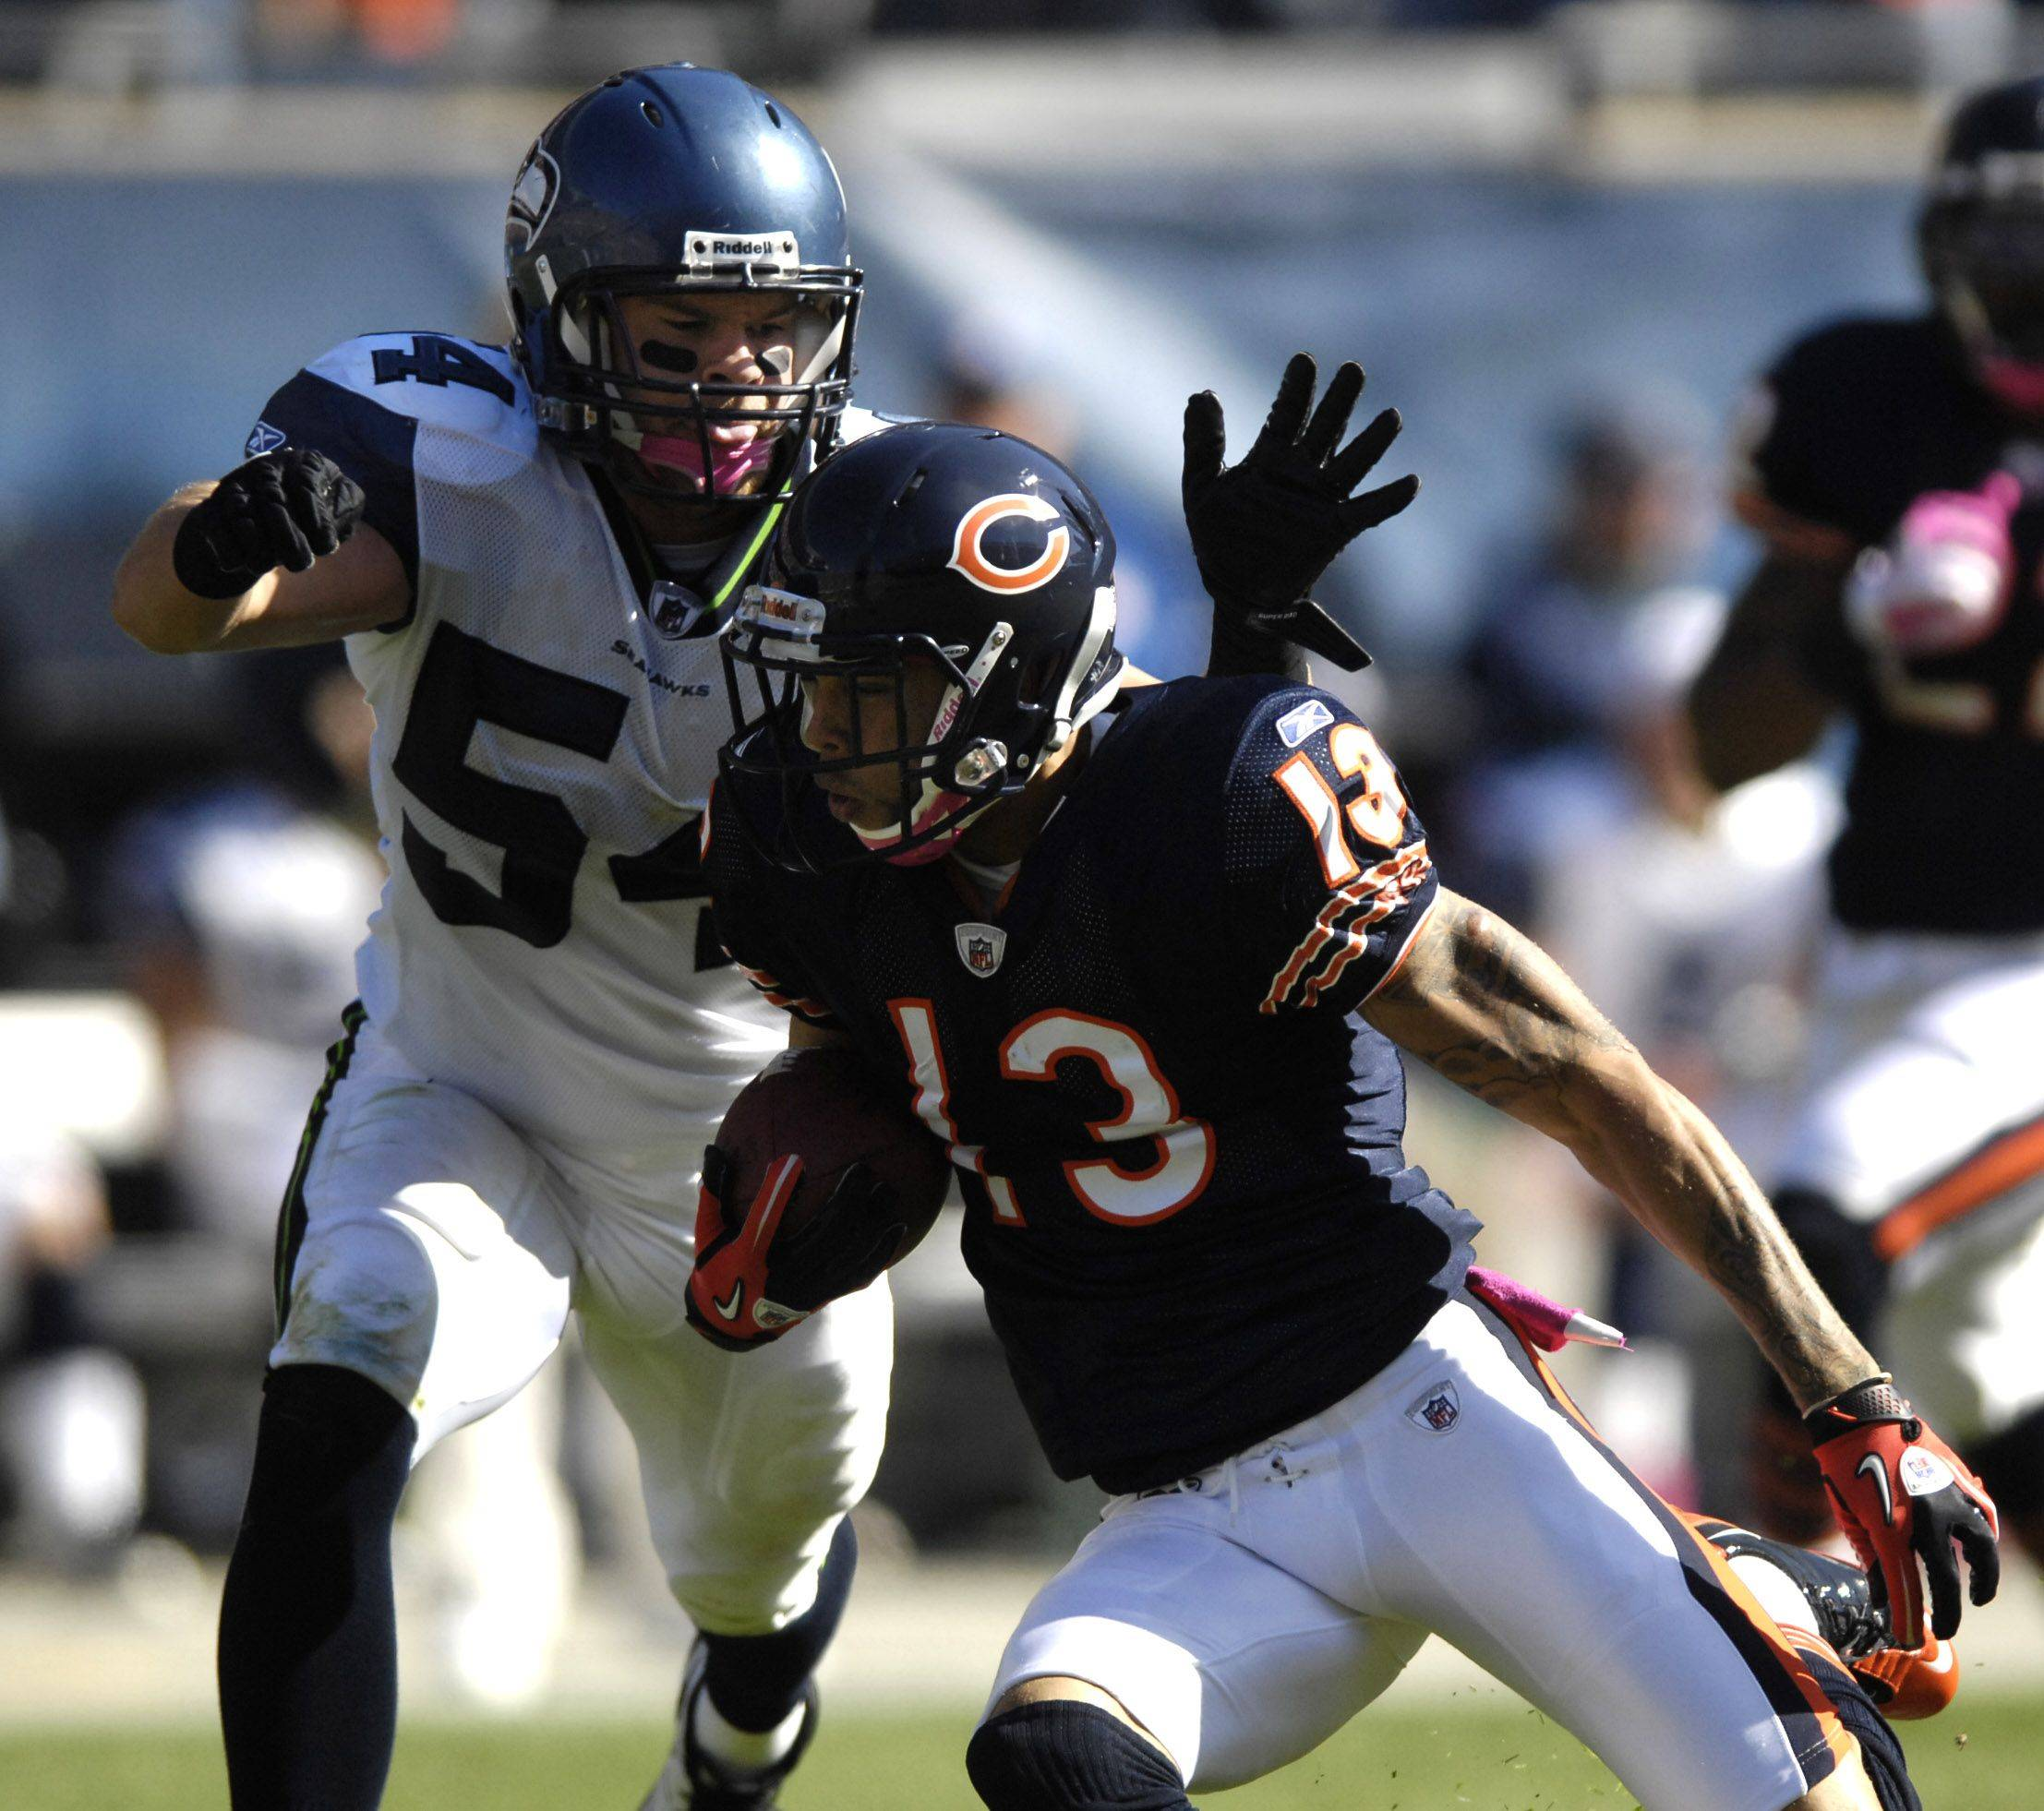 Chicago Bears wide receiver Johnny Knox is pursued by Seattle Seahawks linebacker Will Herring.